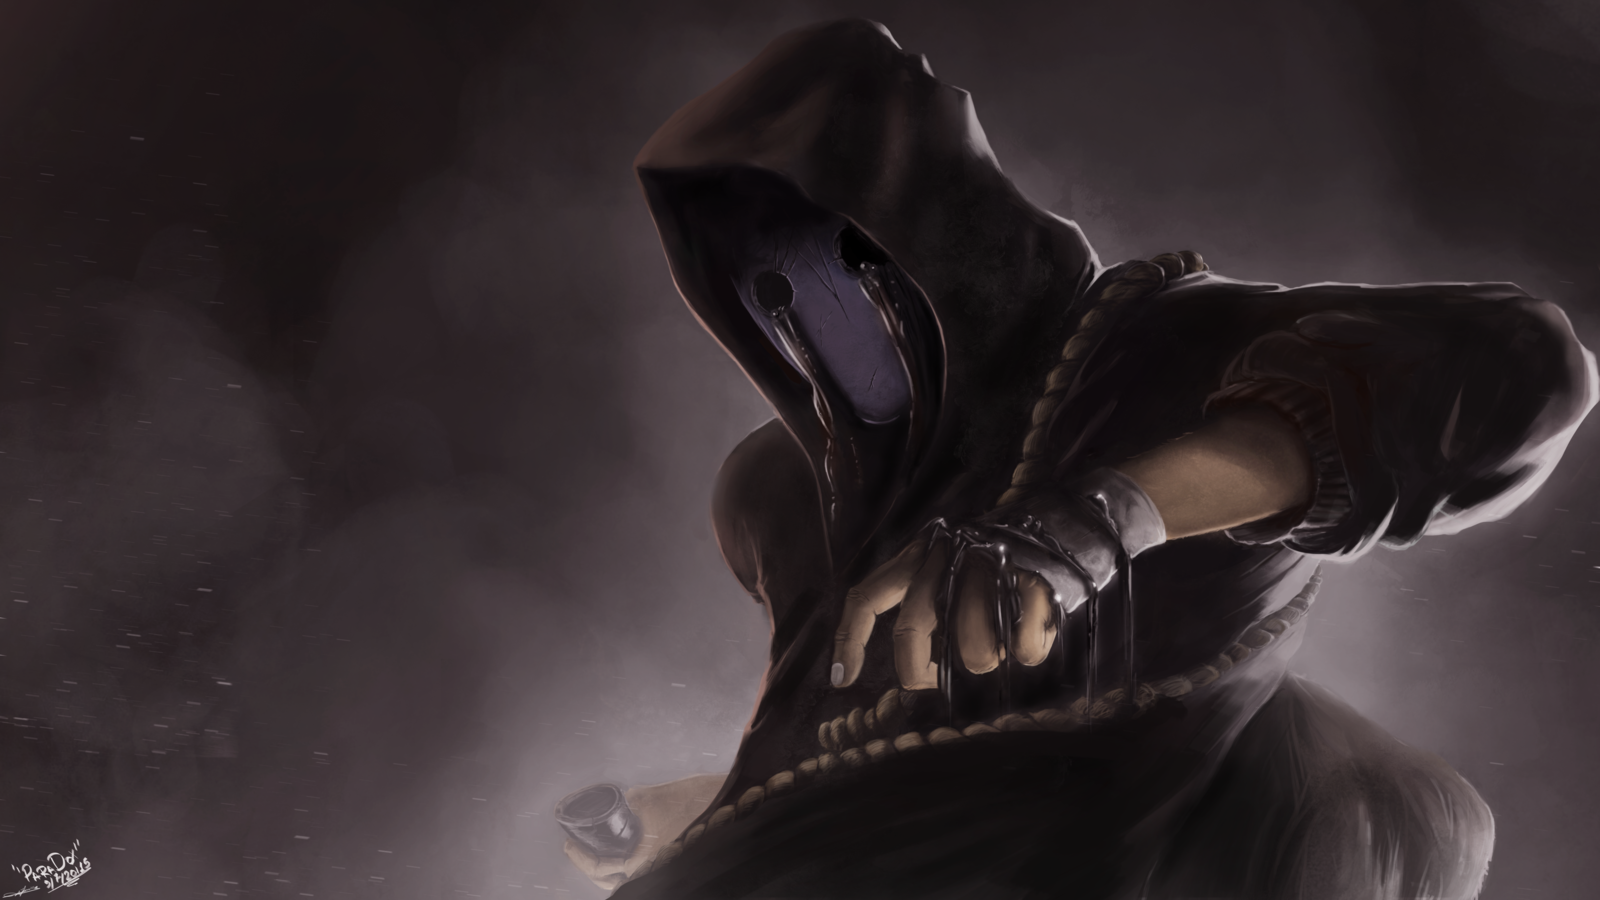 Best 60 Eyeless Jack Wallpaper on HipWallpaper Jack Skeleton 1600x900